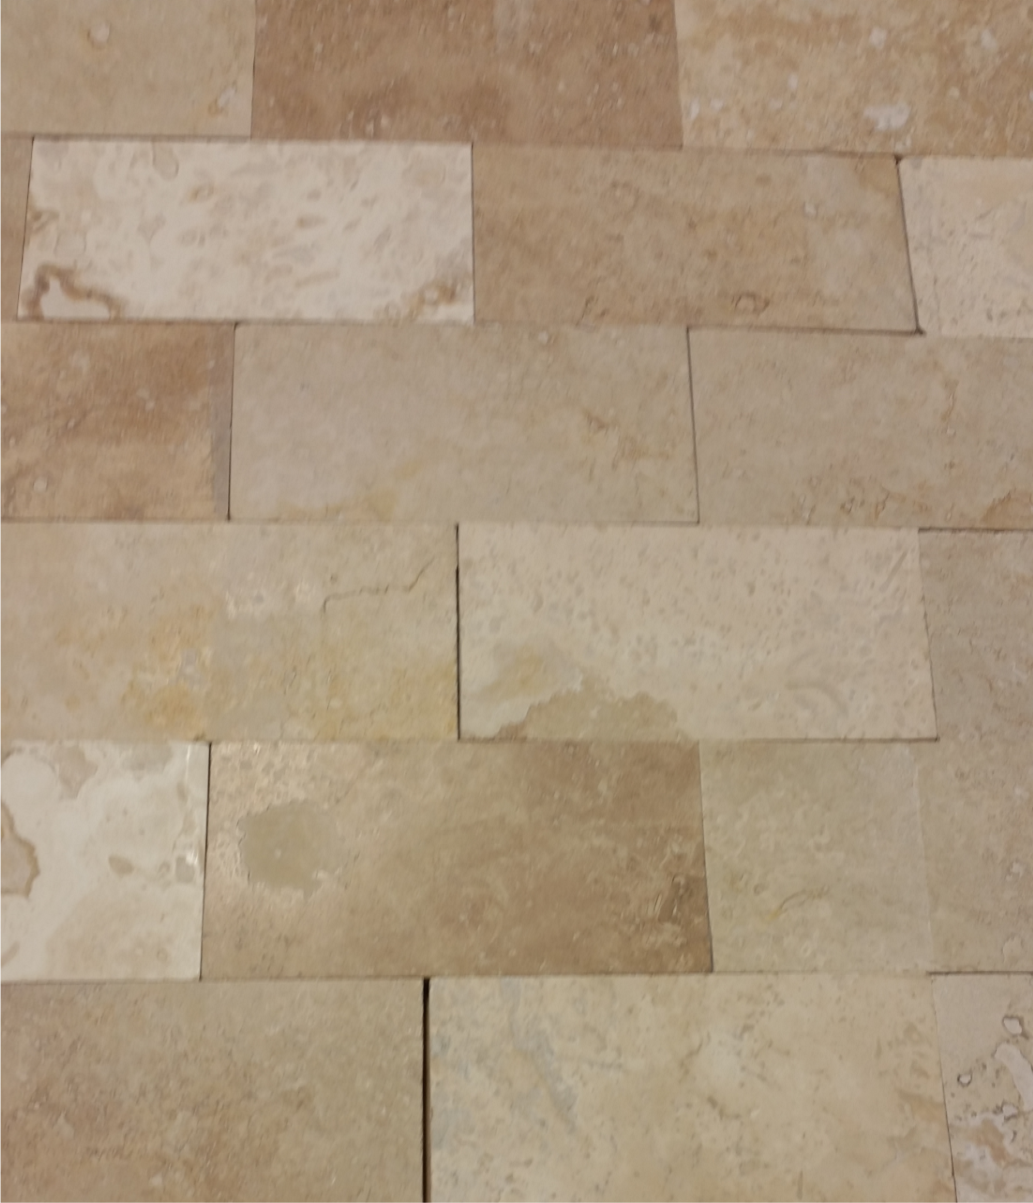 Natural stone bluestar home warehouse kitchen bath cabinets selection range in sizes from 2424 1818 1624 1224 1616 1212 88 66 44 24 22 12 11 58 x58 and 4 size modular pattern sets dailygadgetfo Image collections